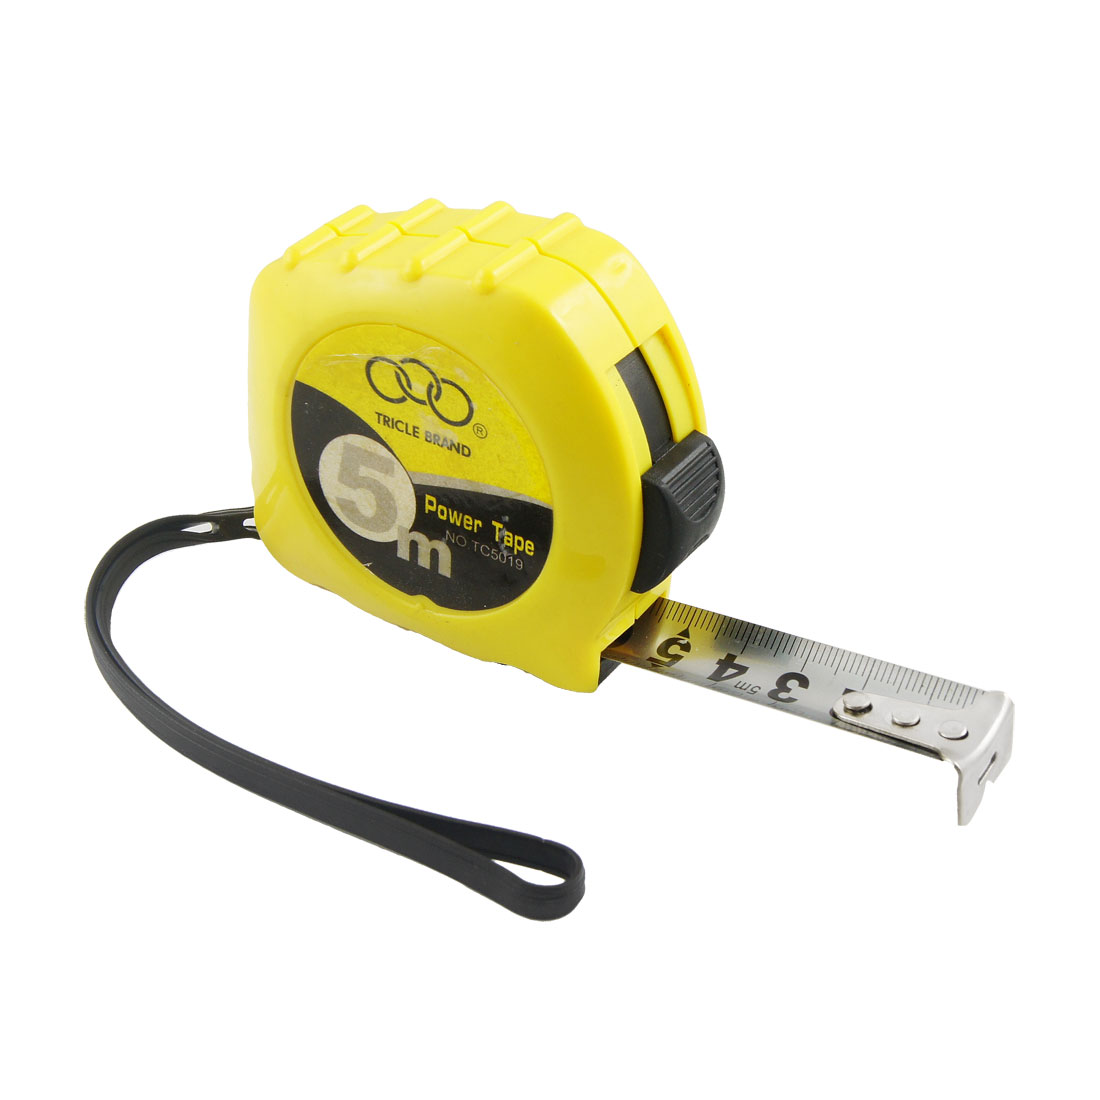 Yellow-Plastic-Case-Retractable-Steel-Ruler-Tape-Metric-Measuring-Tool-5M